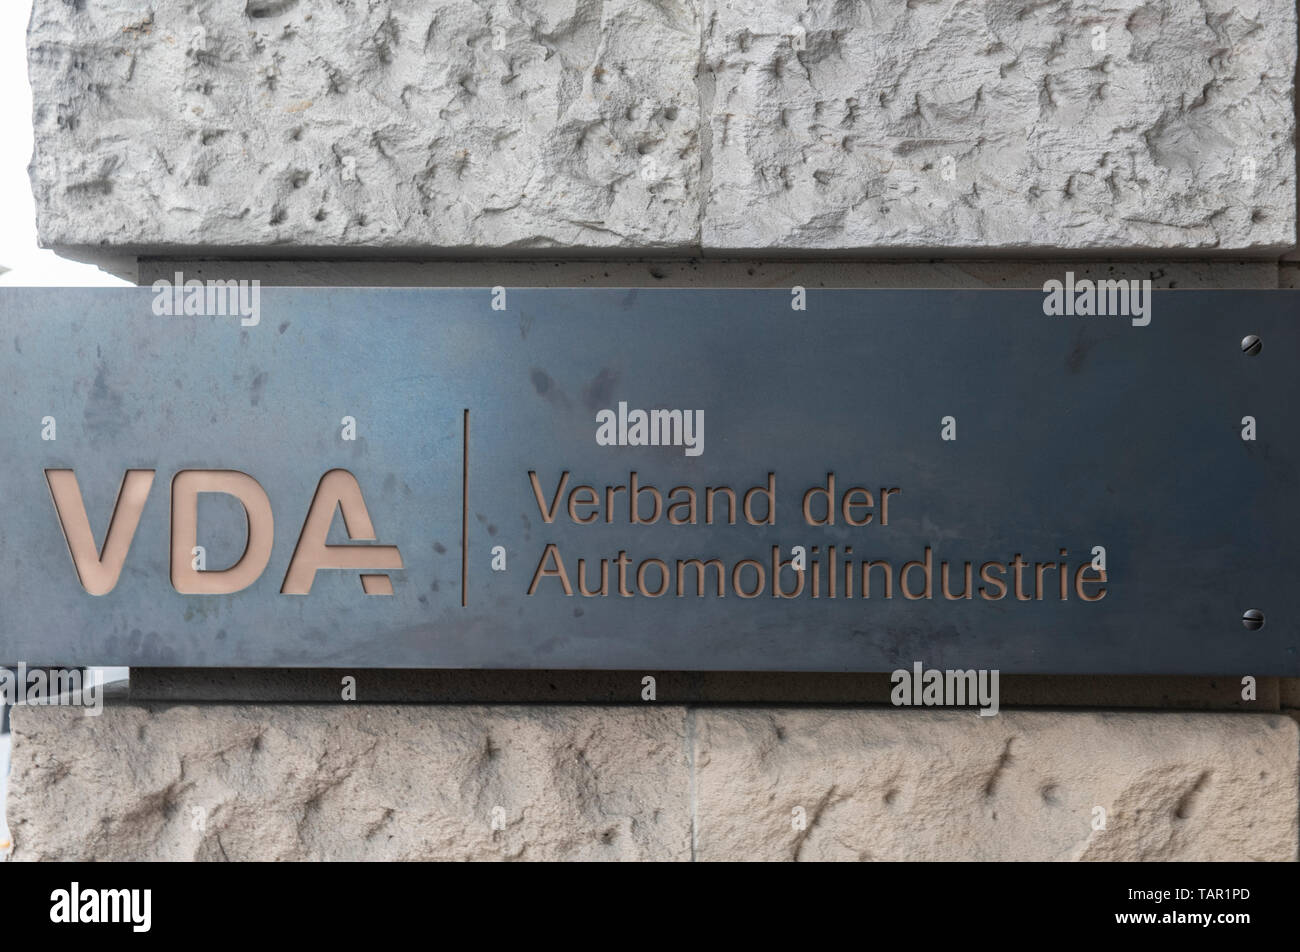 Berlin, Germany. 05th May, 2019. 'VDA - Verband der Automobilindustrie' is written on the sign on the house façade at Bebelplatz. This is where the VDA has its headquarters. Credit: Paul Zinken/dpa/Alamy Live News - Stock Image